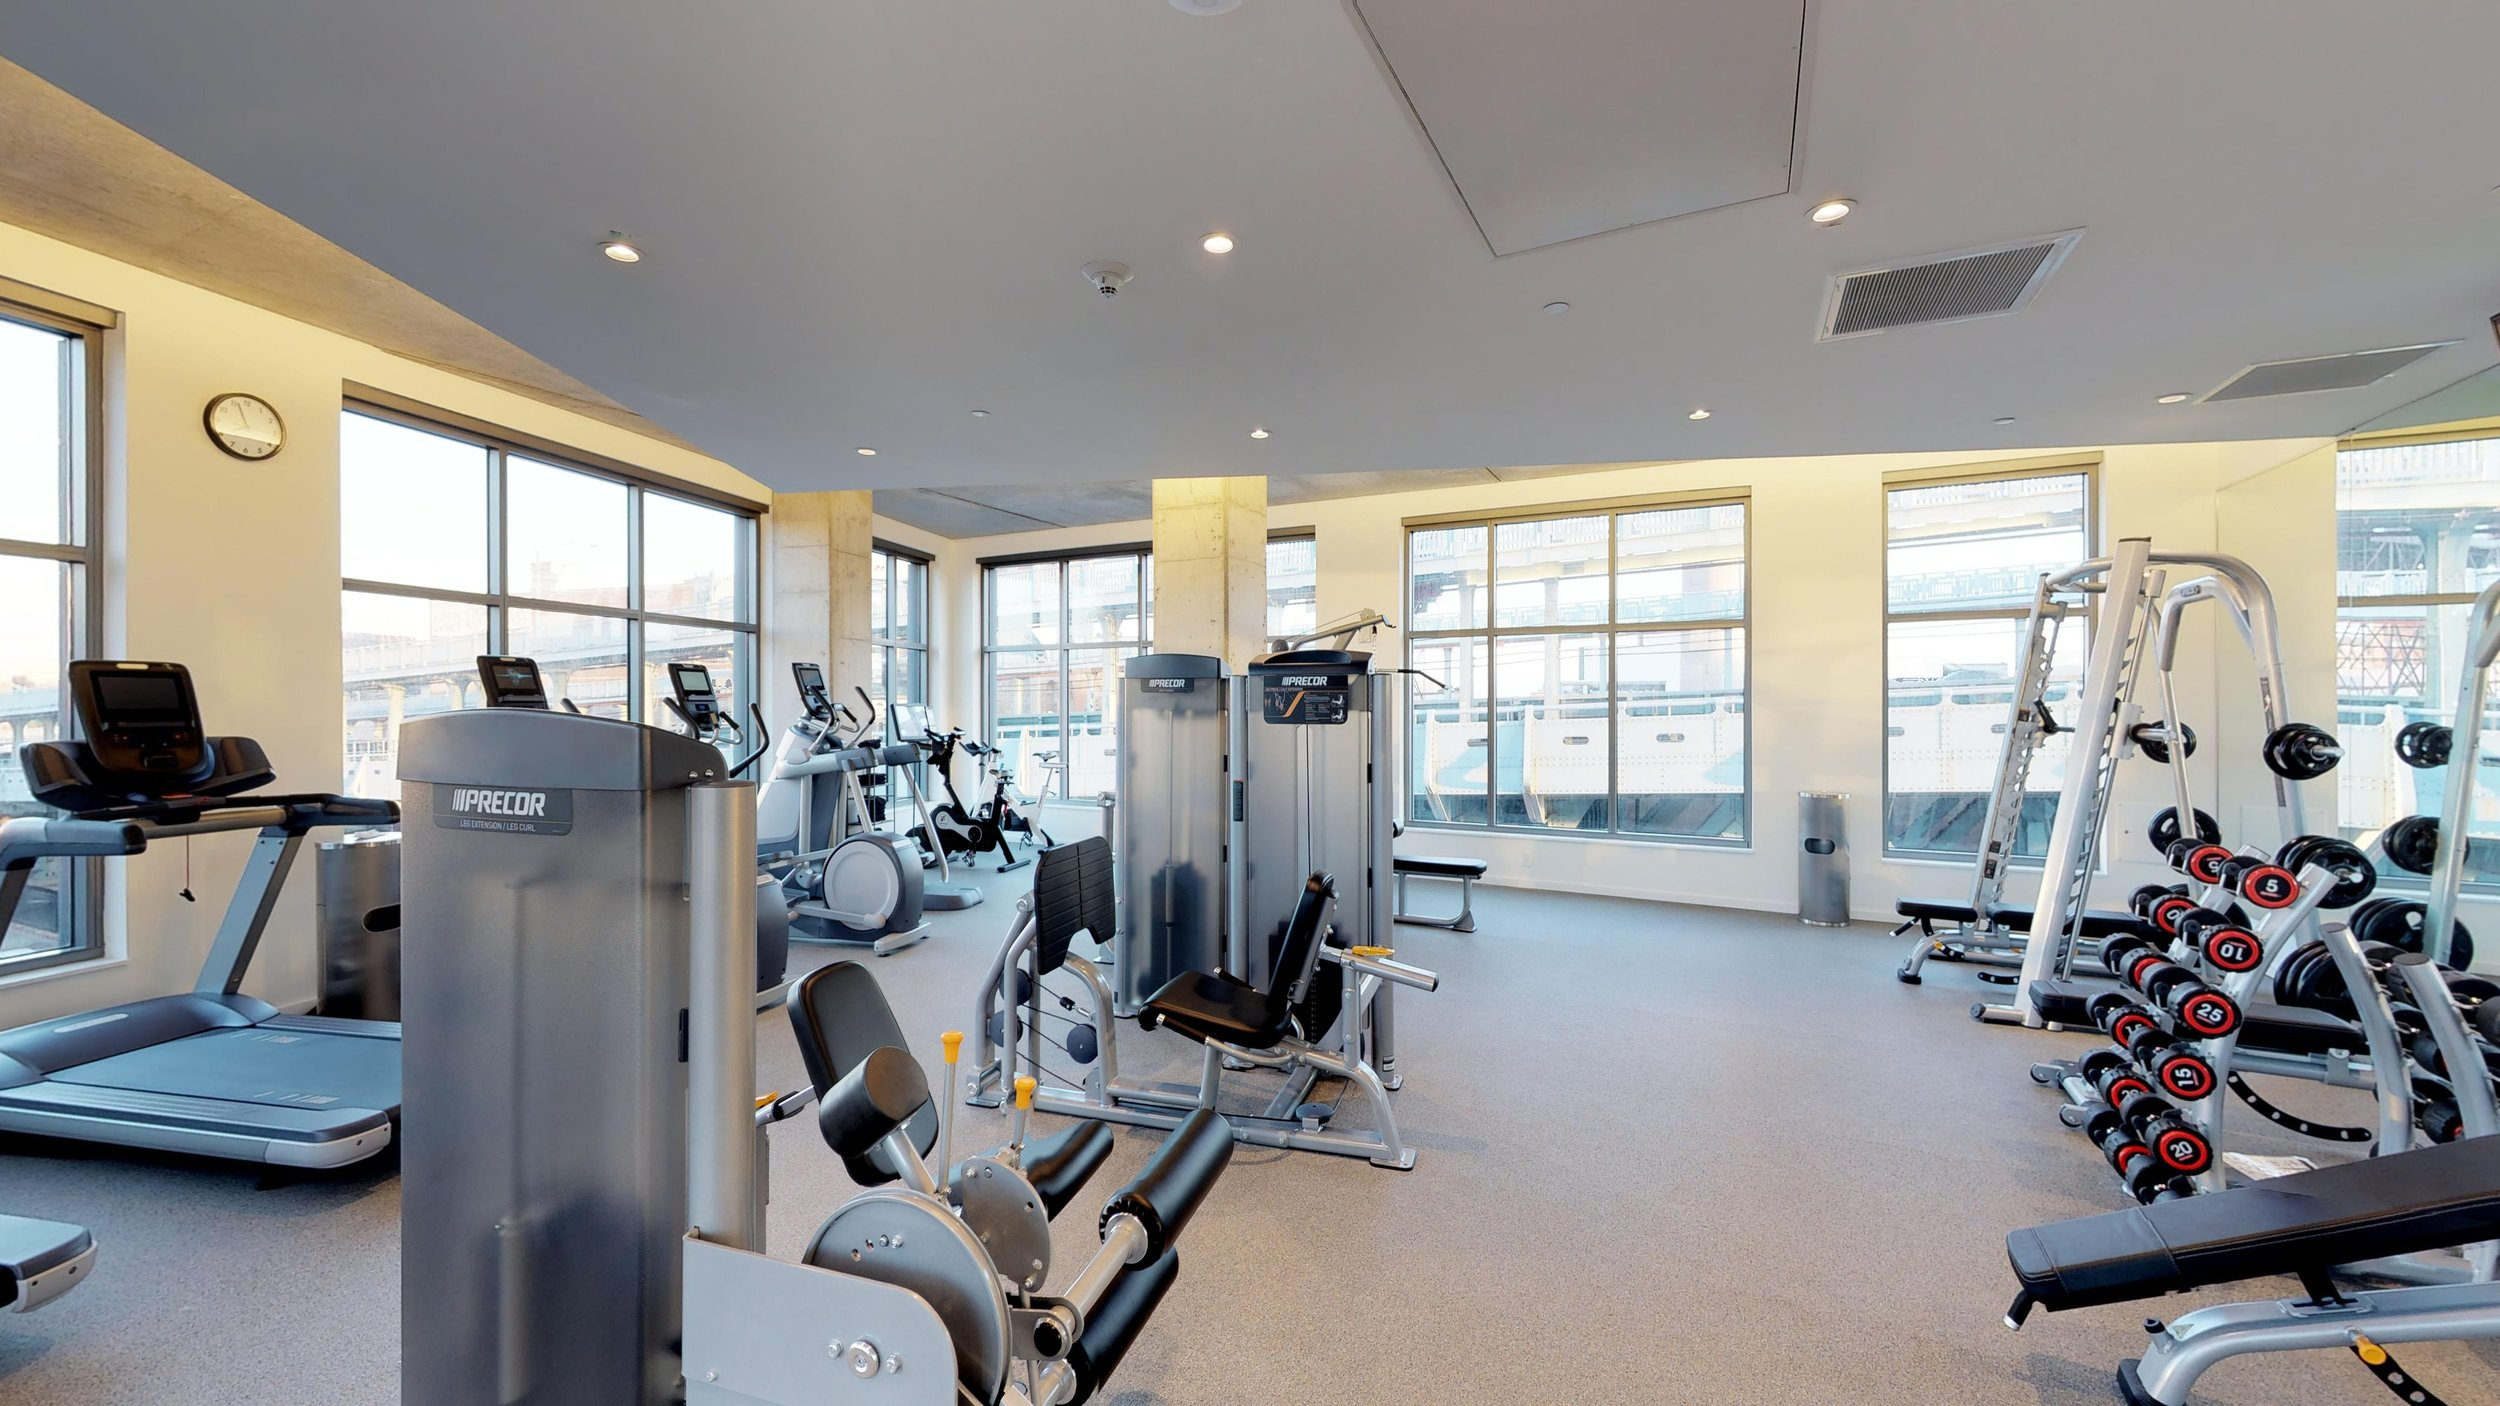 16 The Best Equipment in the Gym and Bridge.jpg